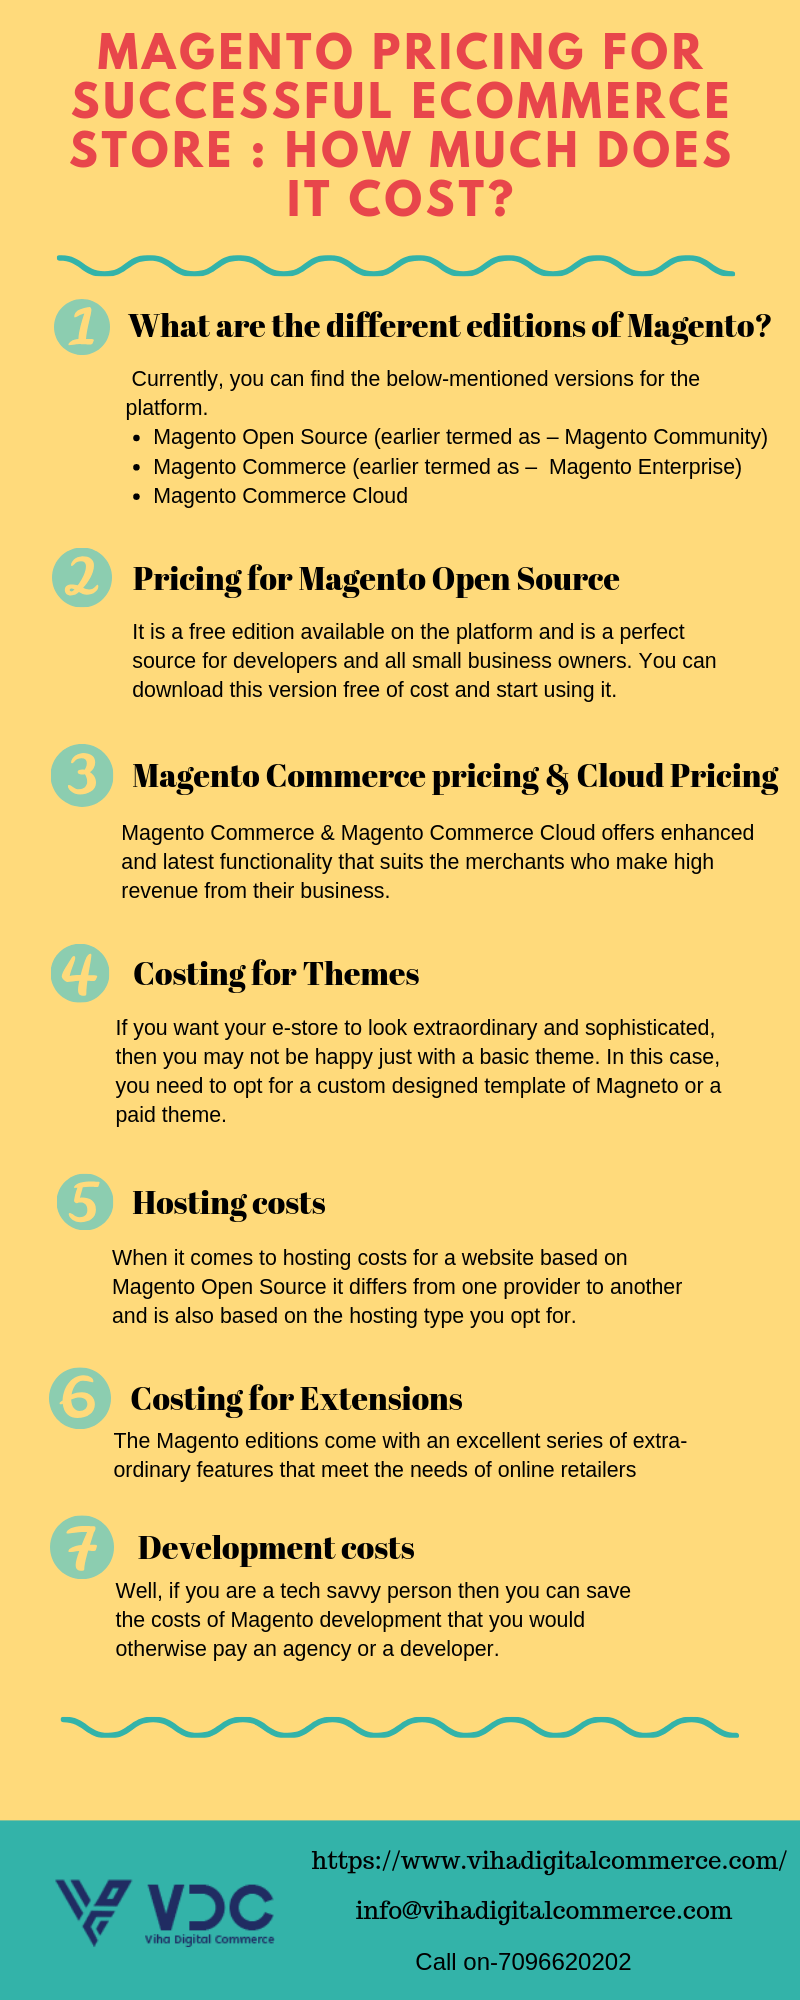 Magento Pricing for Successful eCommerce Store : How Much Does it Cost?